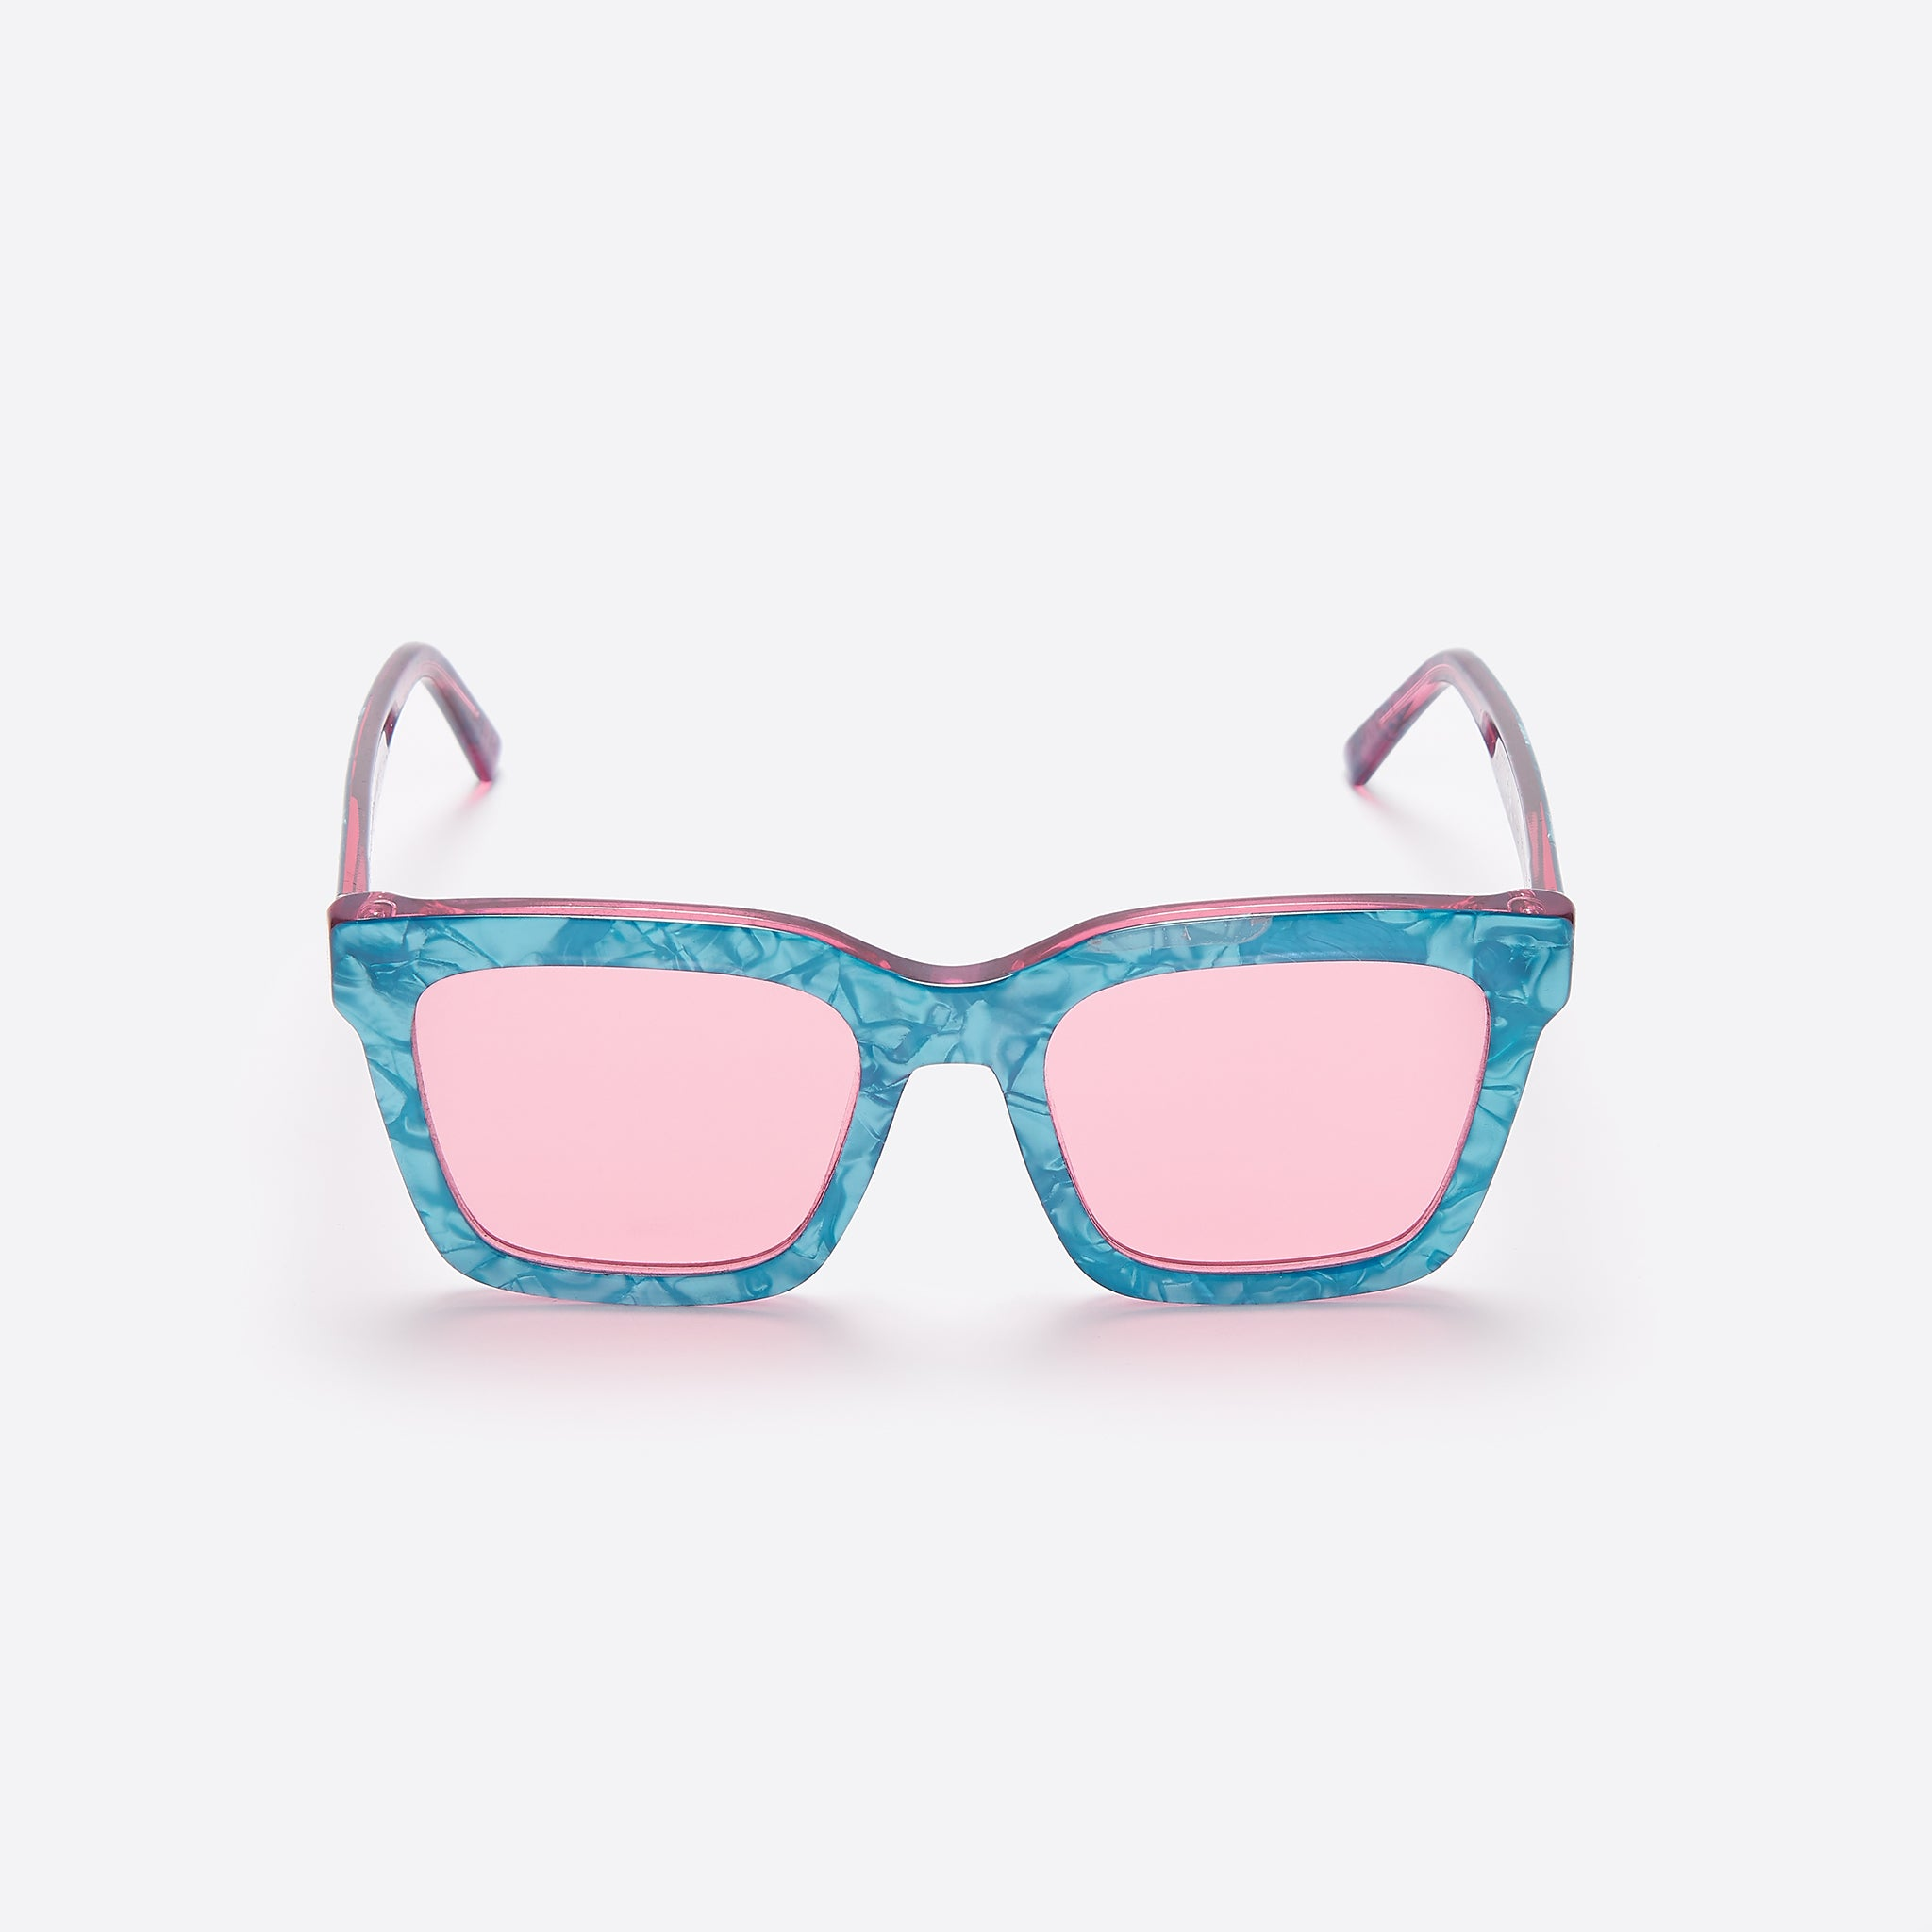 Super Aalto Sunglasses in Blue Pearl